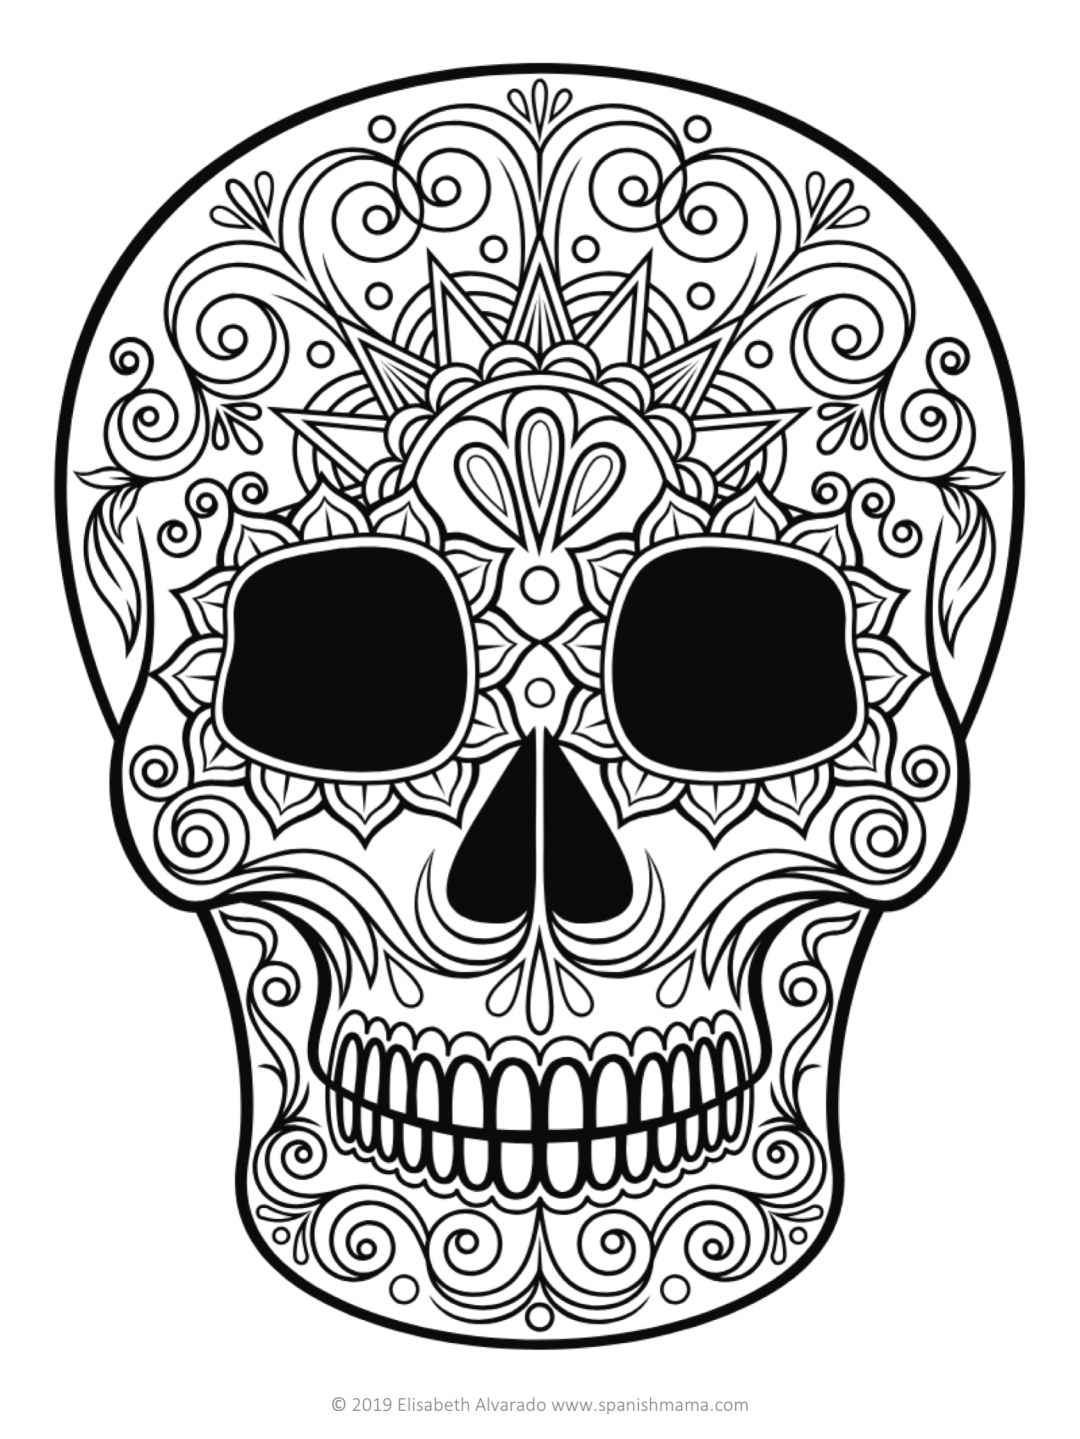 coloring skulls coloring pages skull free printable coloring pages skulls coloring